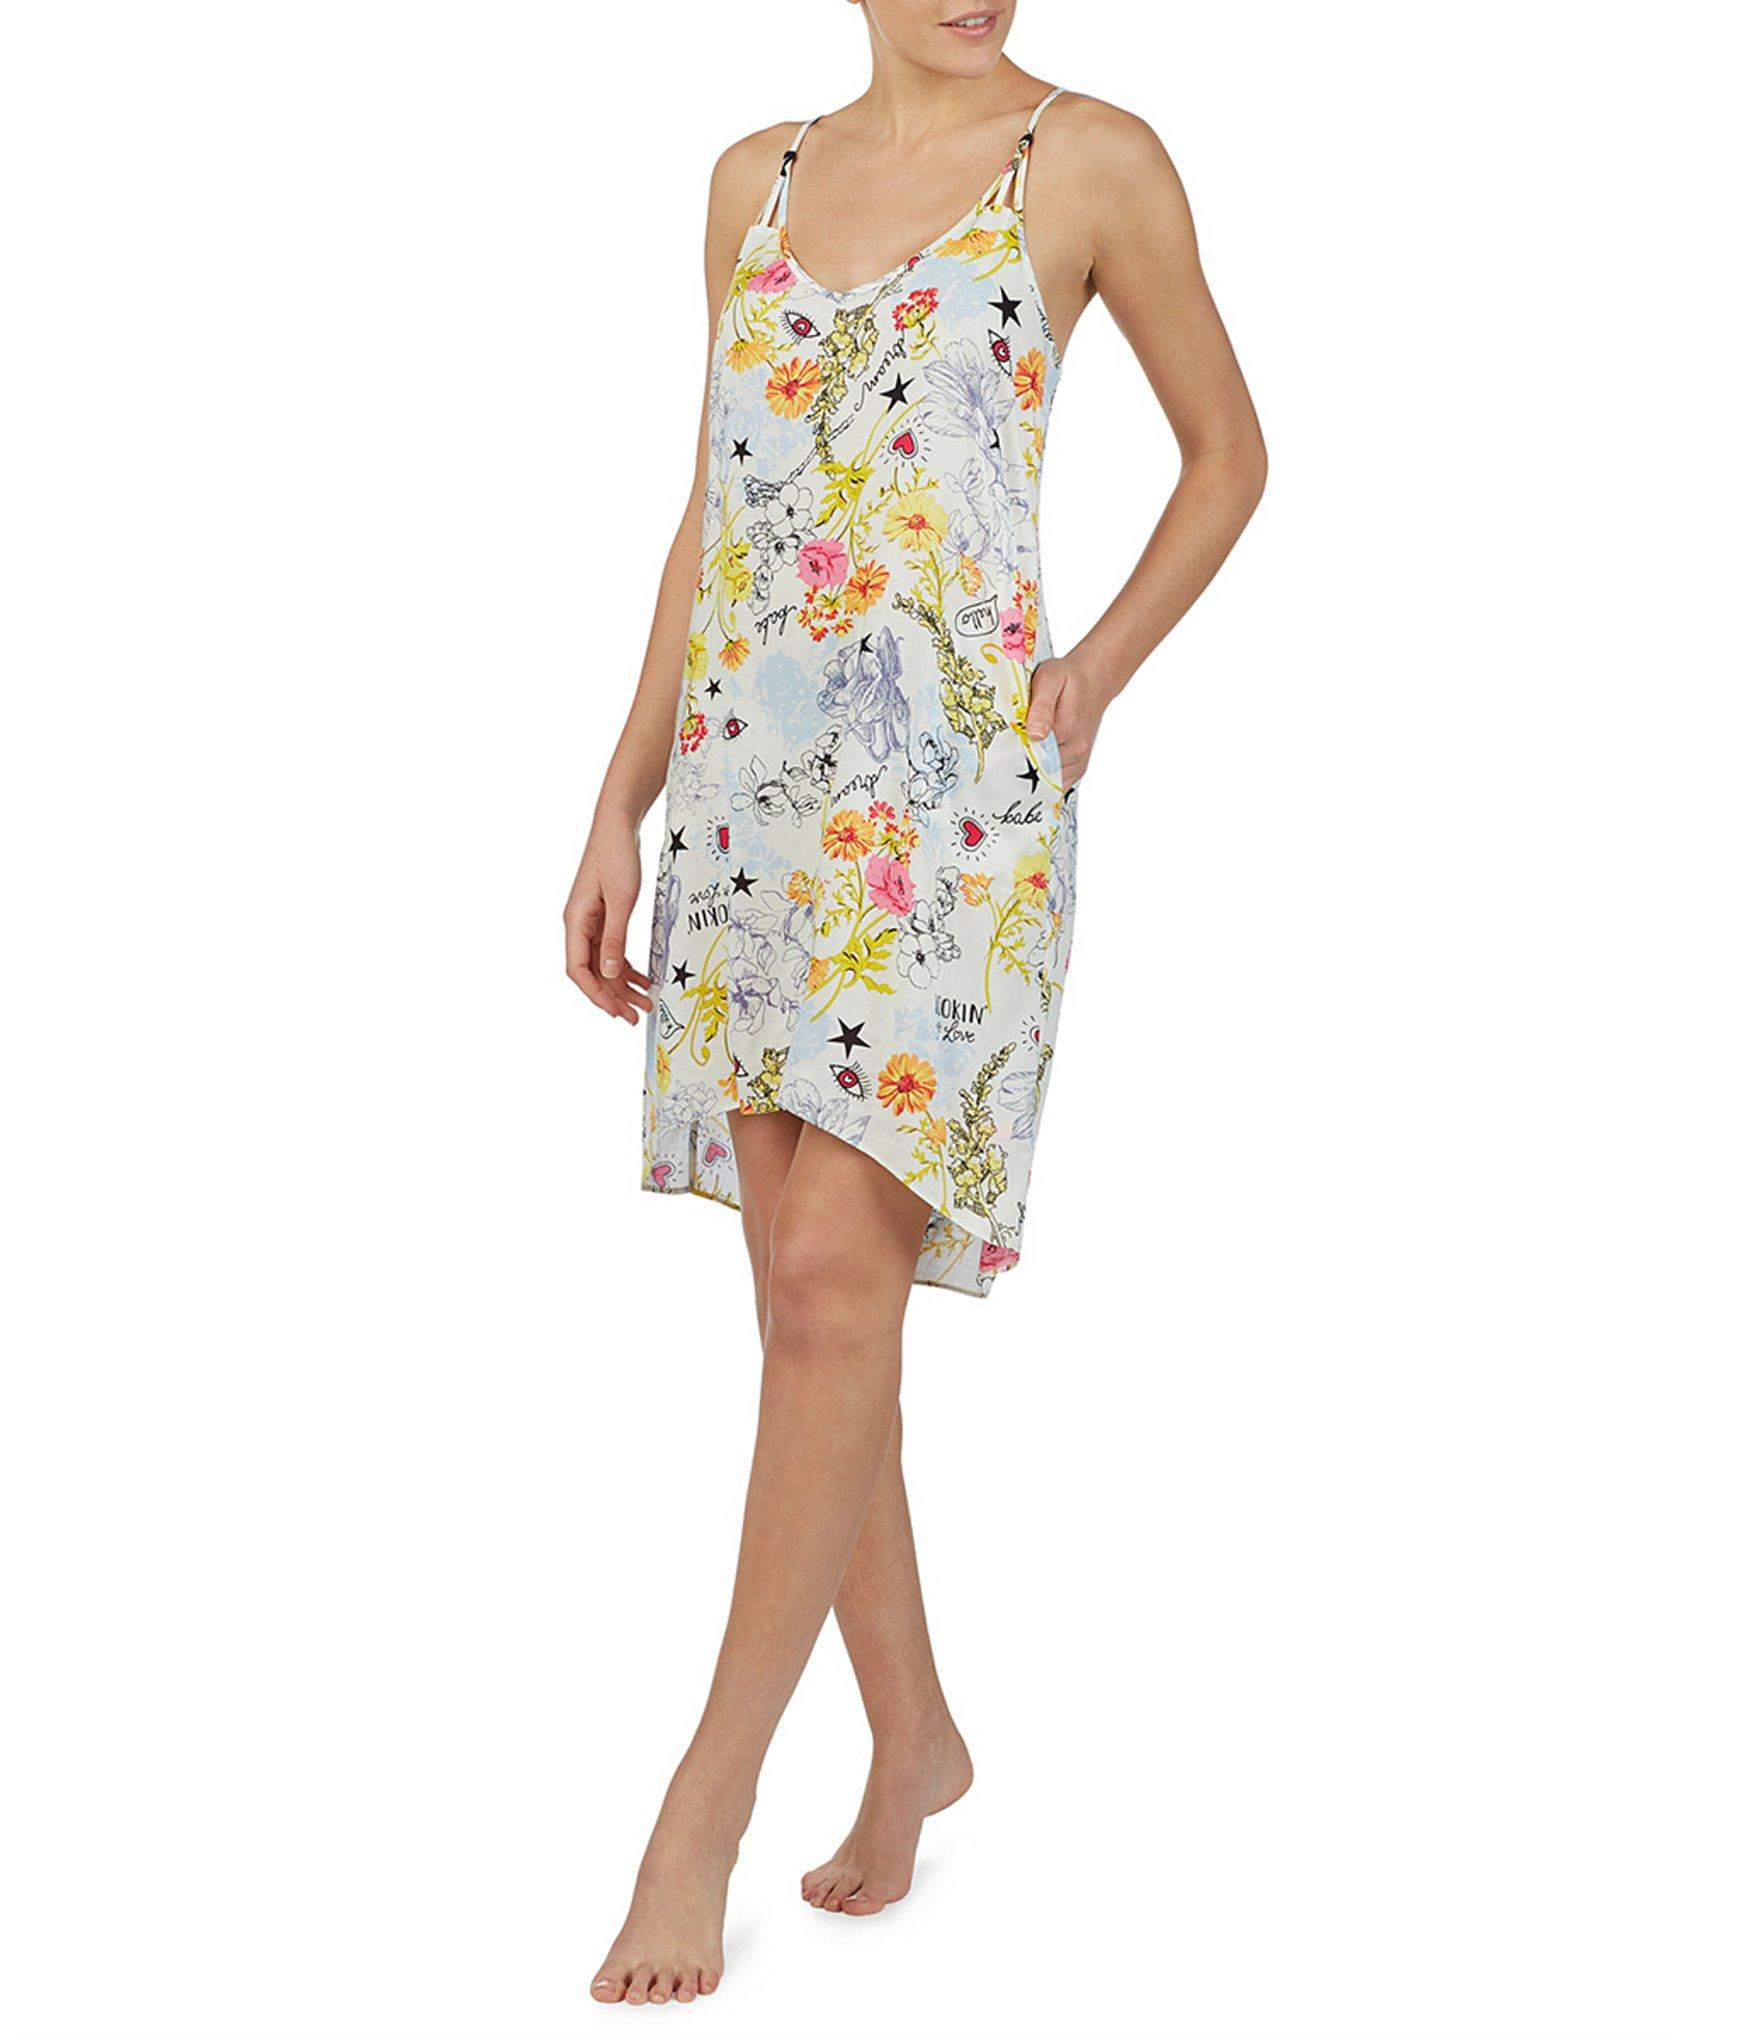 e355d2658bdf Lyst - Betsey Johnson Floral-printed Woven Chemise in White